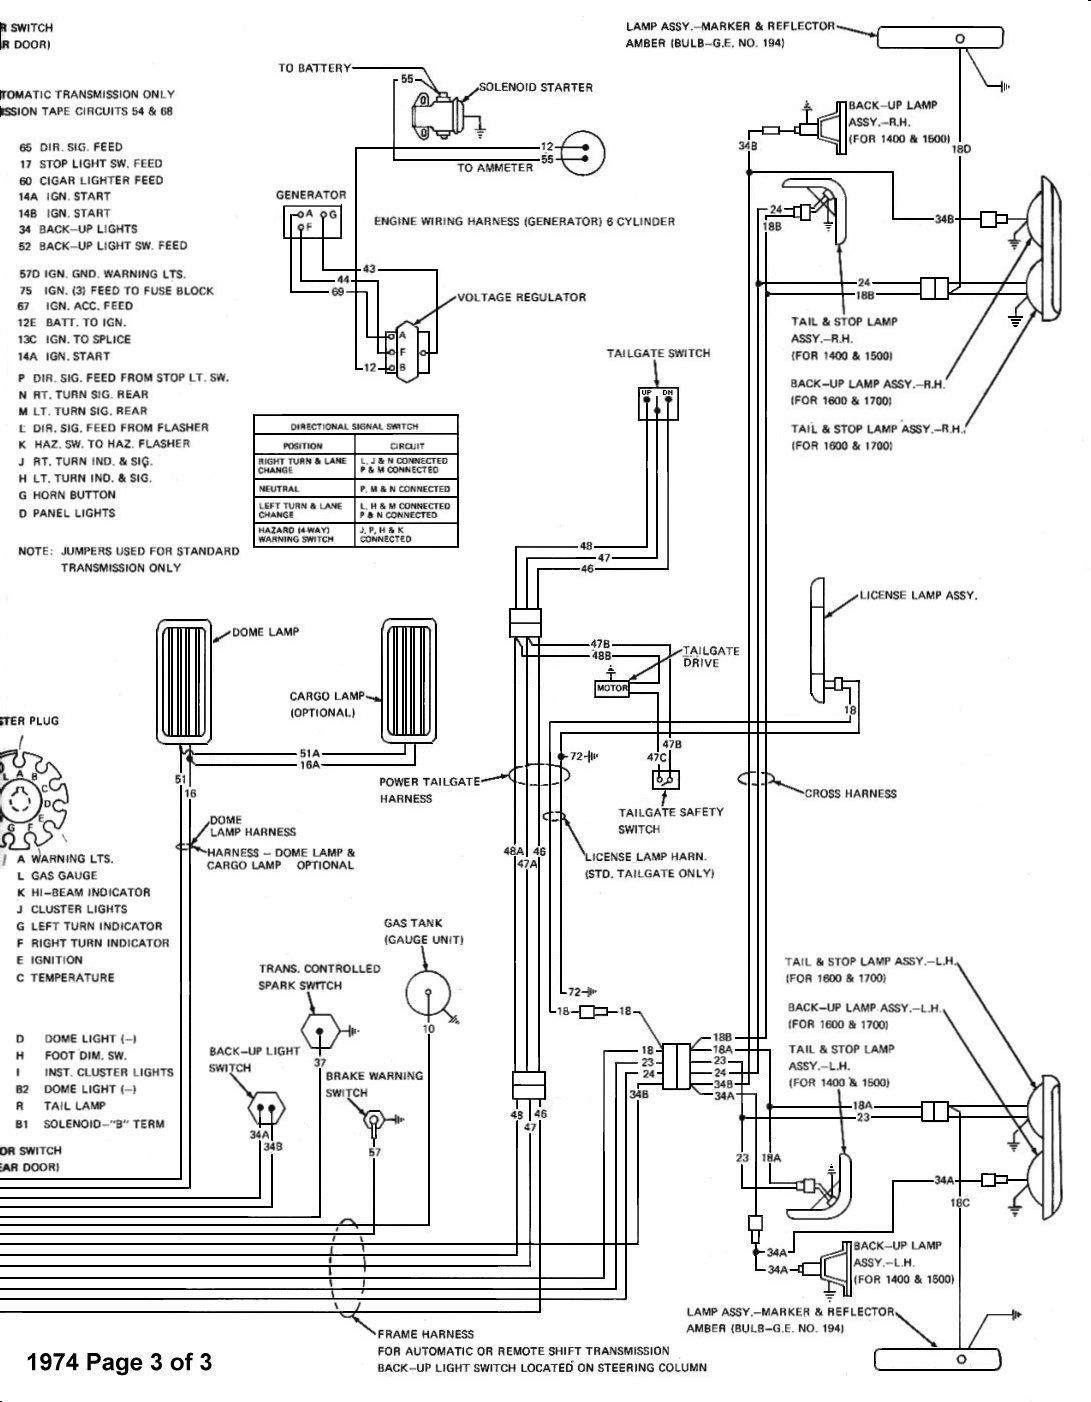 Jeep Cherokee Heater Switch Diagram